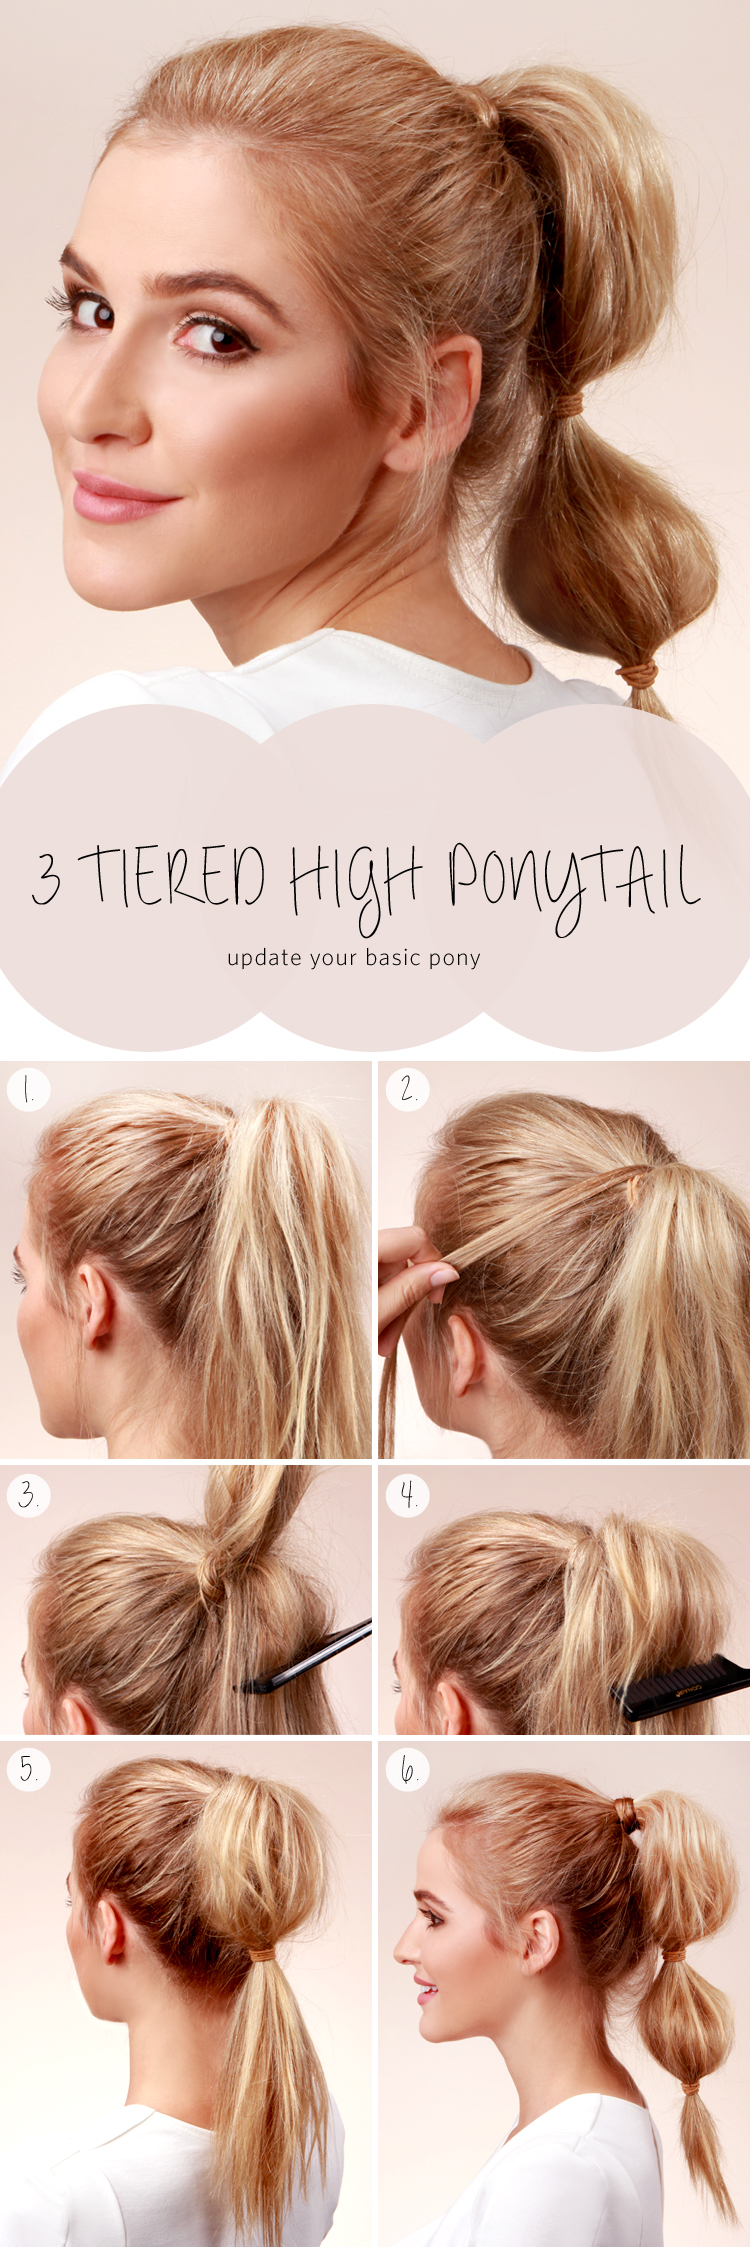 15 Lovely And Useful Hairstyle Tutorials